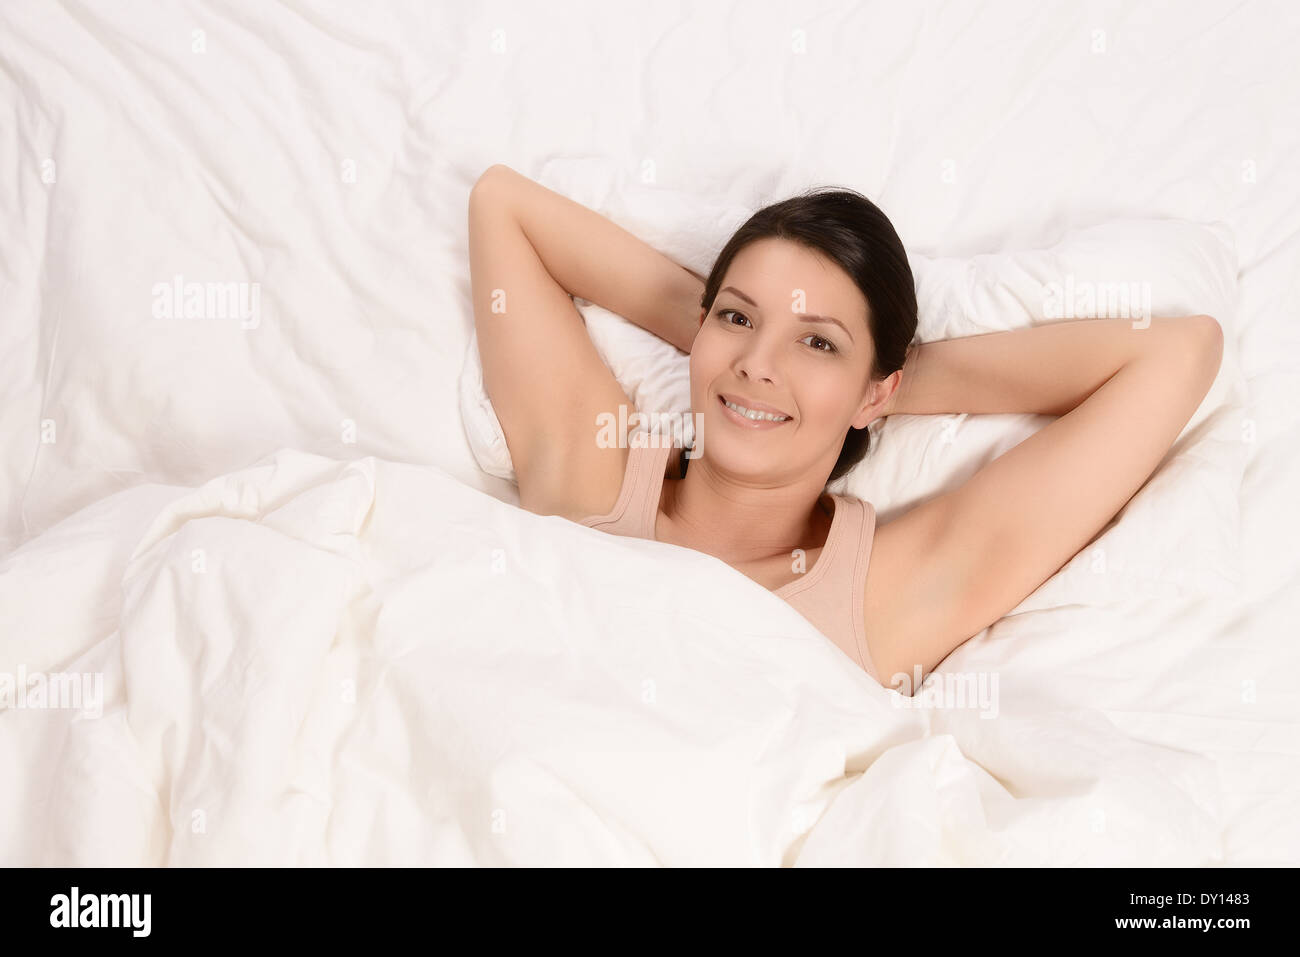 Smiling healthy rejuvenated young woman snuggling down between her pillows in bed giving the camera a wide beaming joyful smile - Stock Image